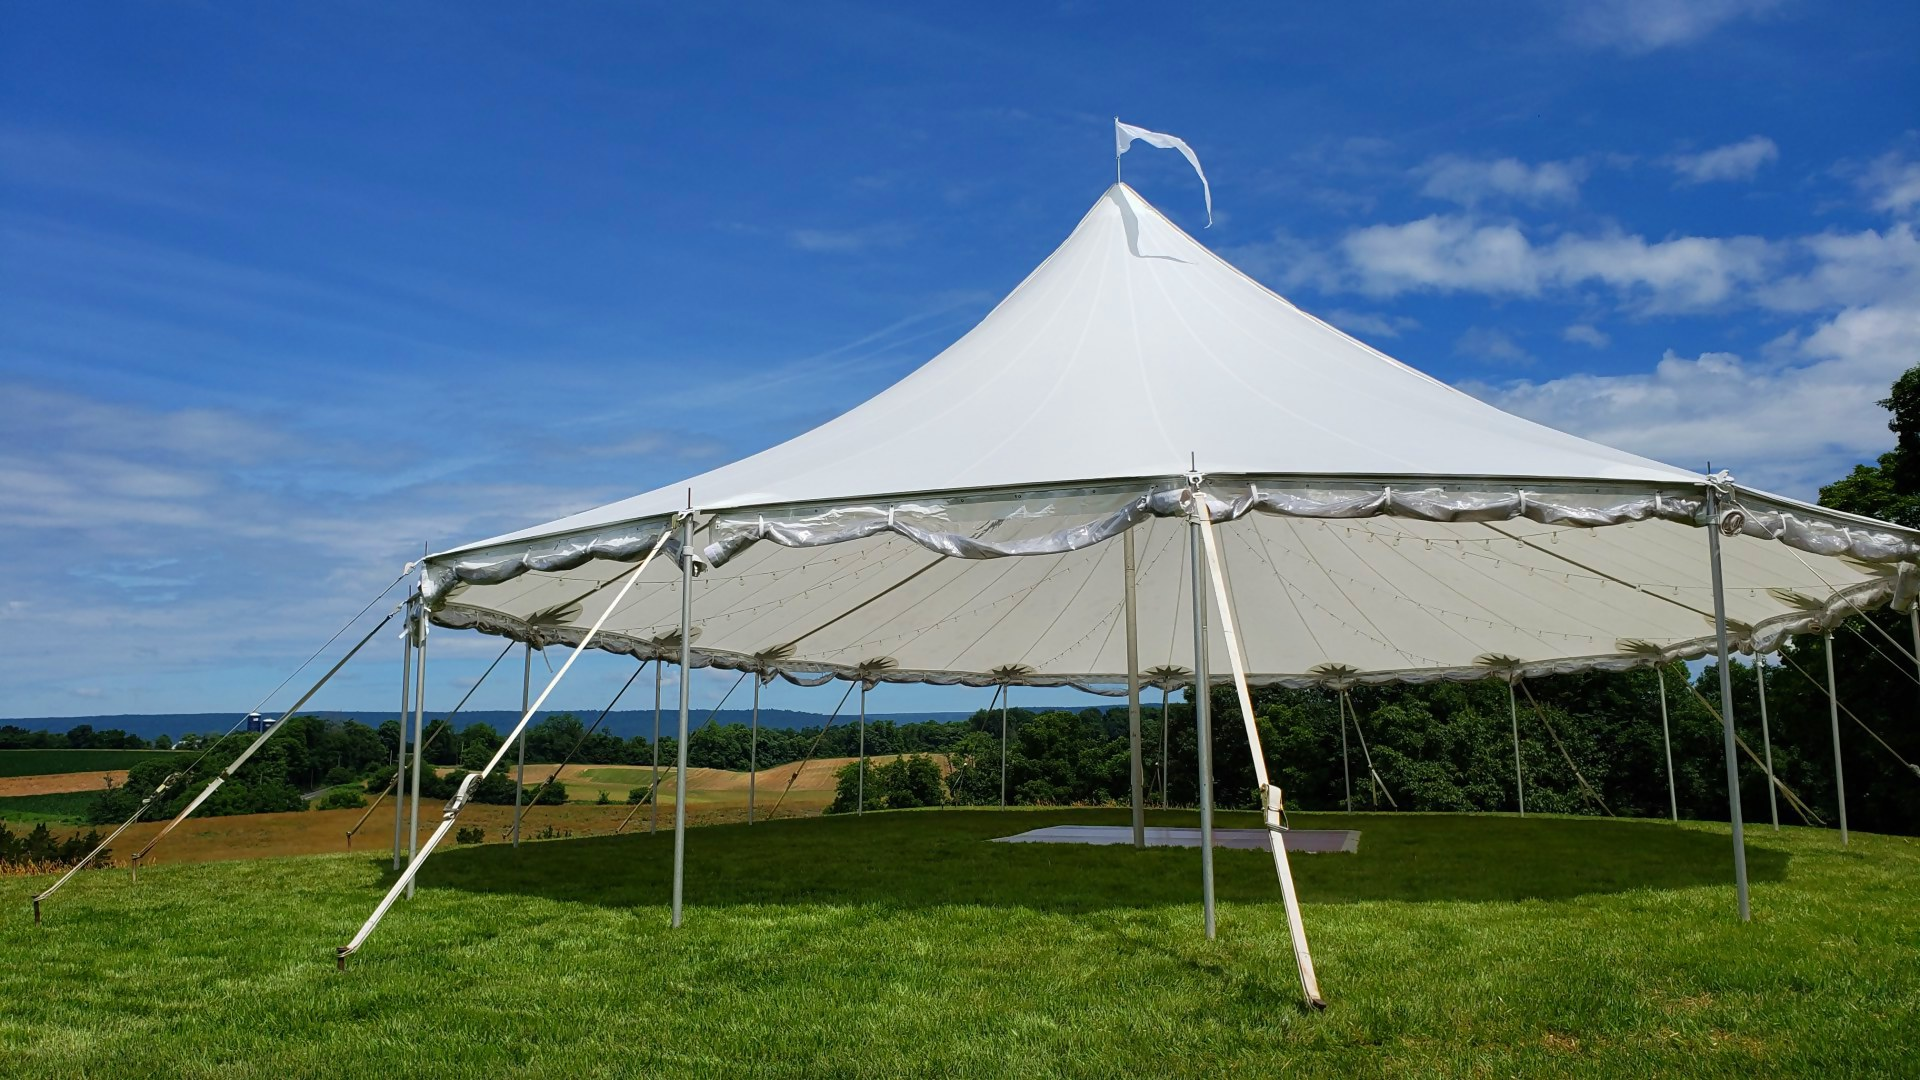 Beautiful sailcloth tent for rent in Gettysburg, PA